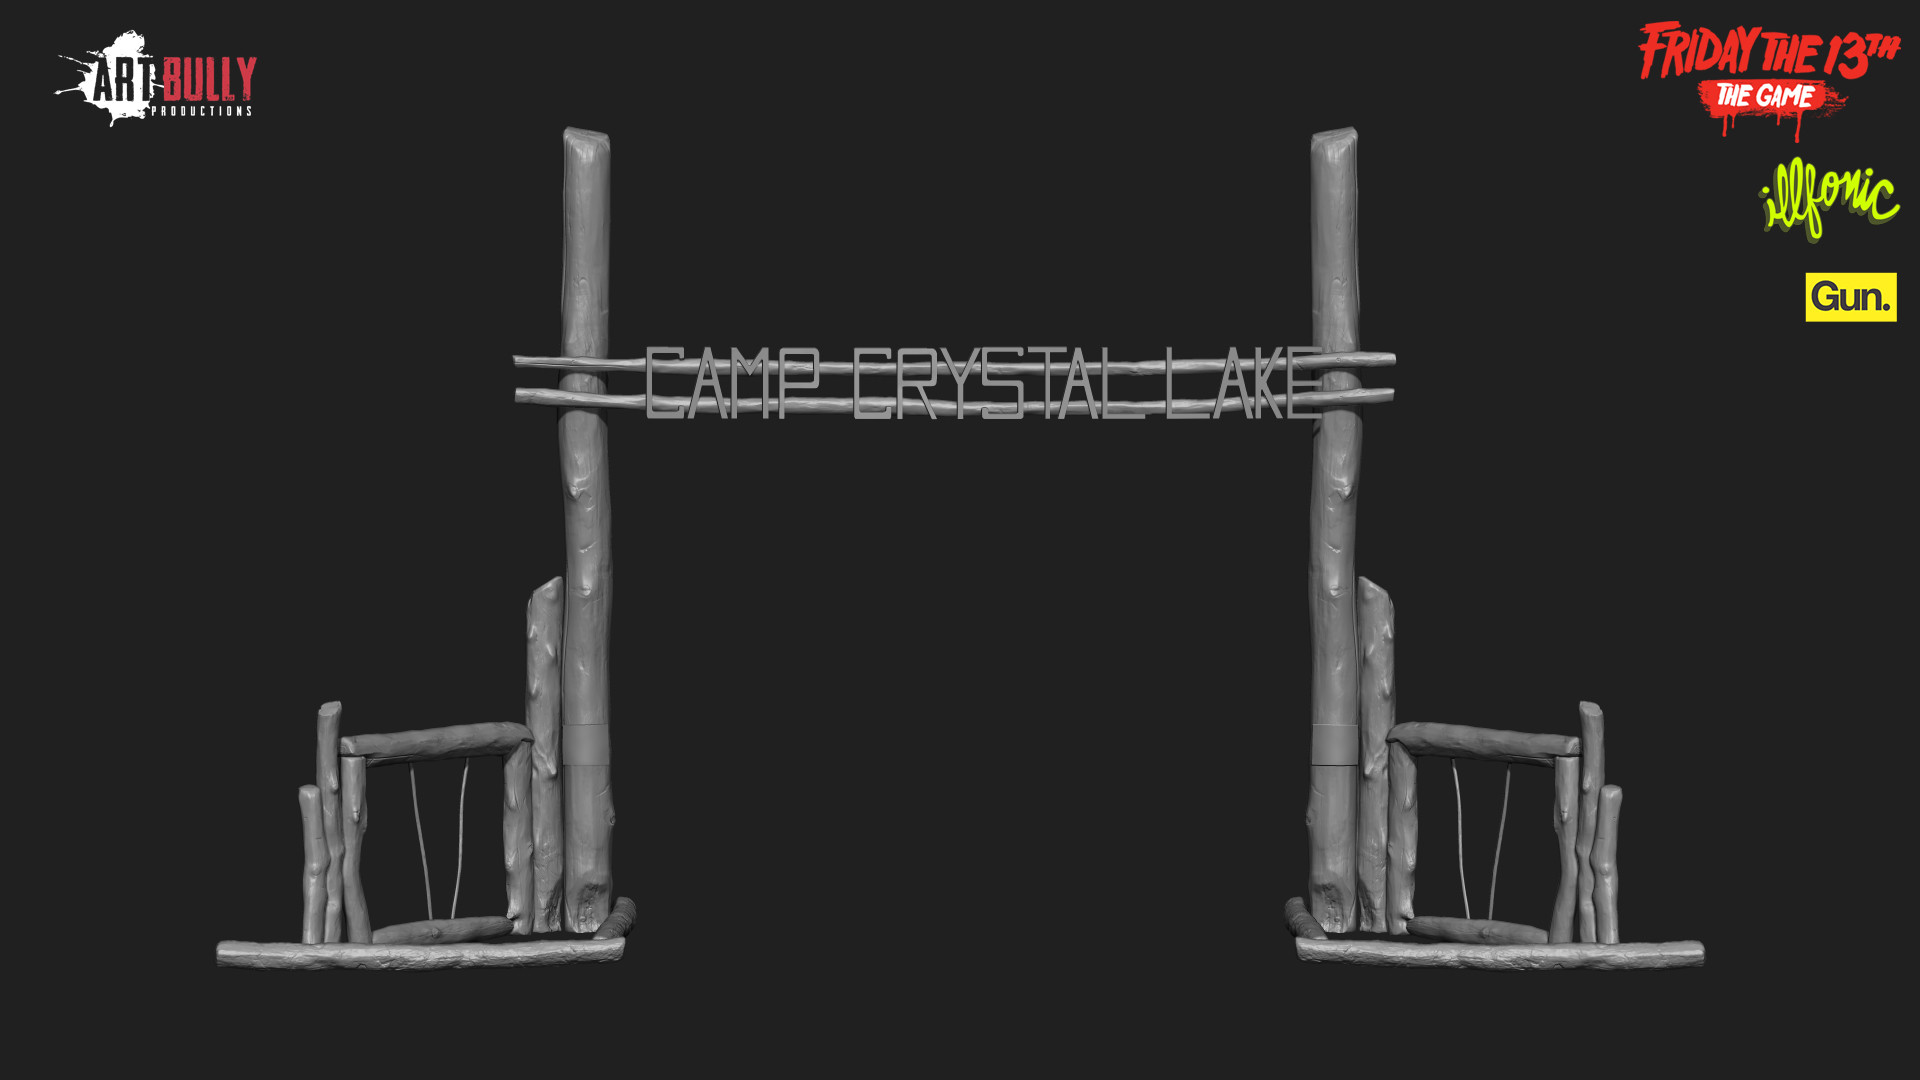 Friday the 13th: The Game - Camp Crystal Lake Sign - High Poly